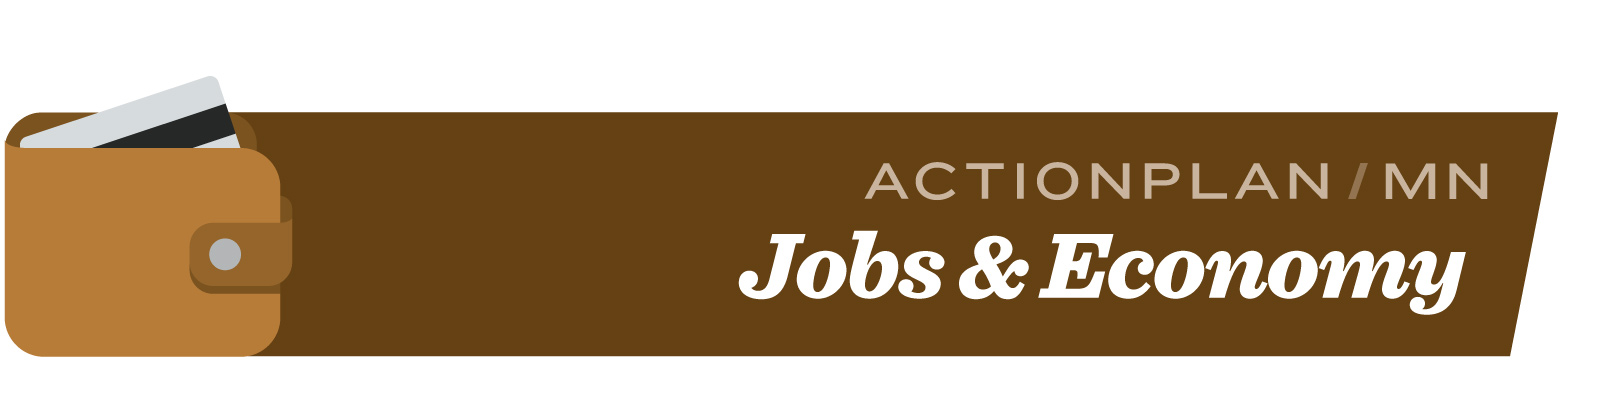 ActionPlanMN-3-Jobs-Economy.jpg